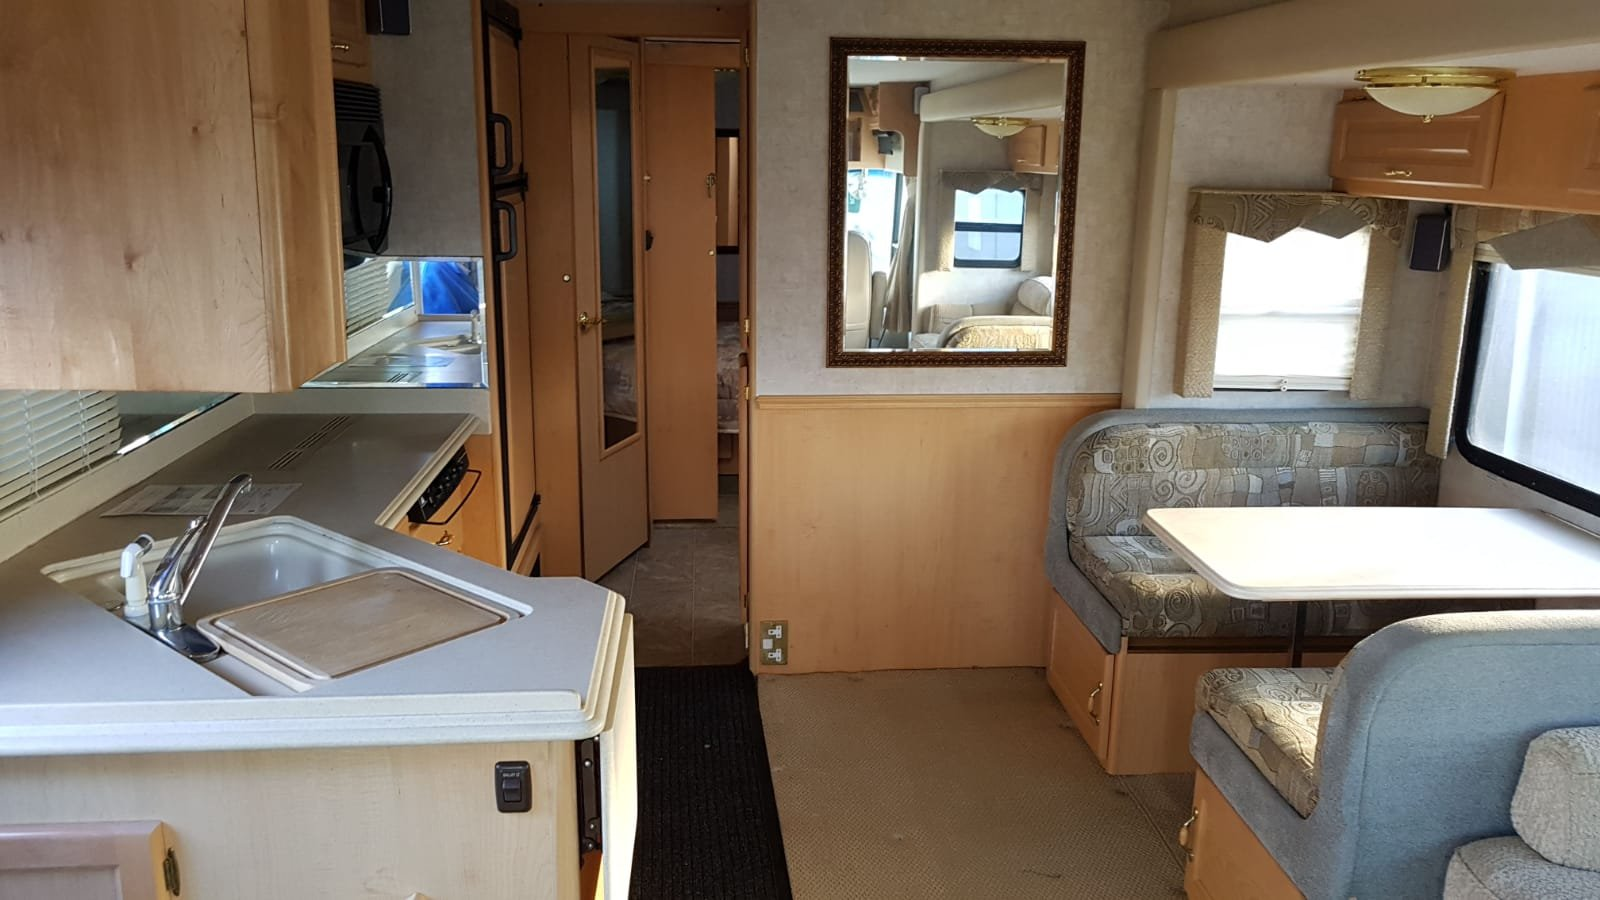 2005 seabreeze motorhome For Sale (picture 4 of 6)